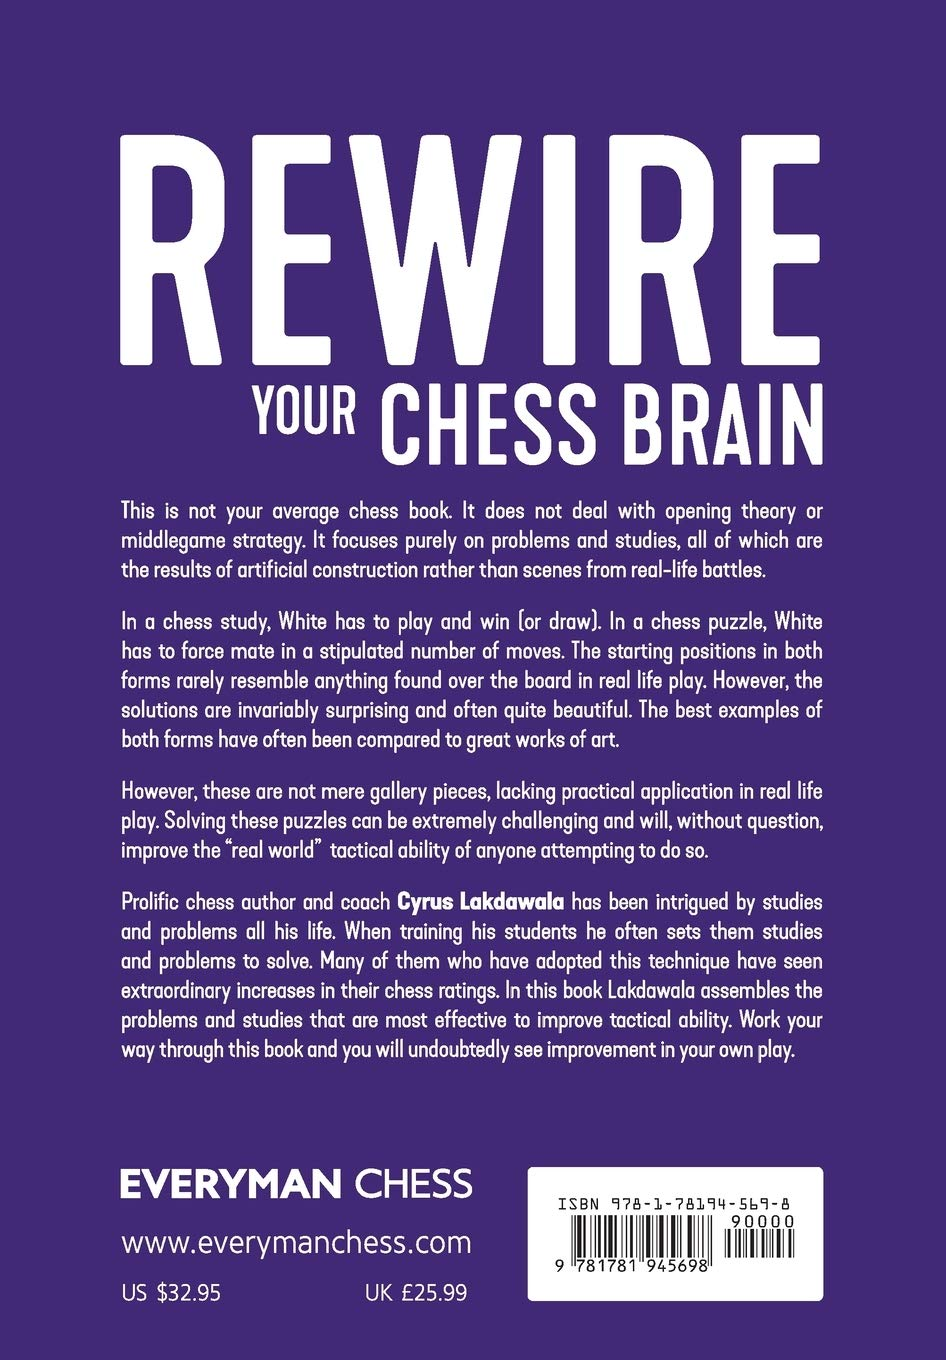 Rewire Your Chess Brain: Endgame studies and mating problems to enhance your tactical ability, Cyrus Lakdawala, Everyman Chess, August 2020